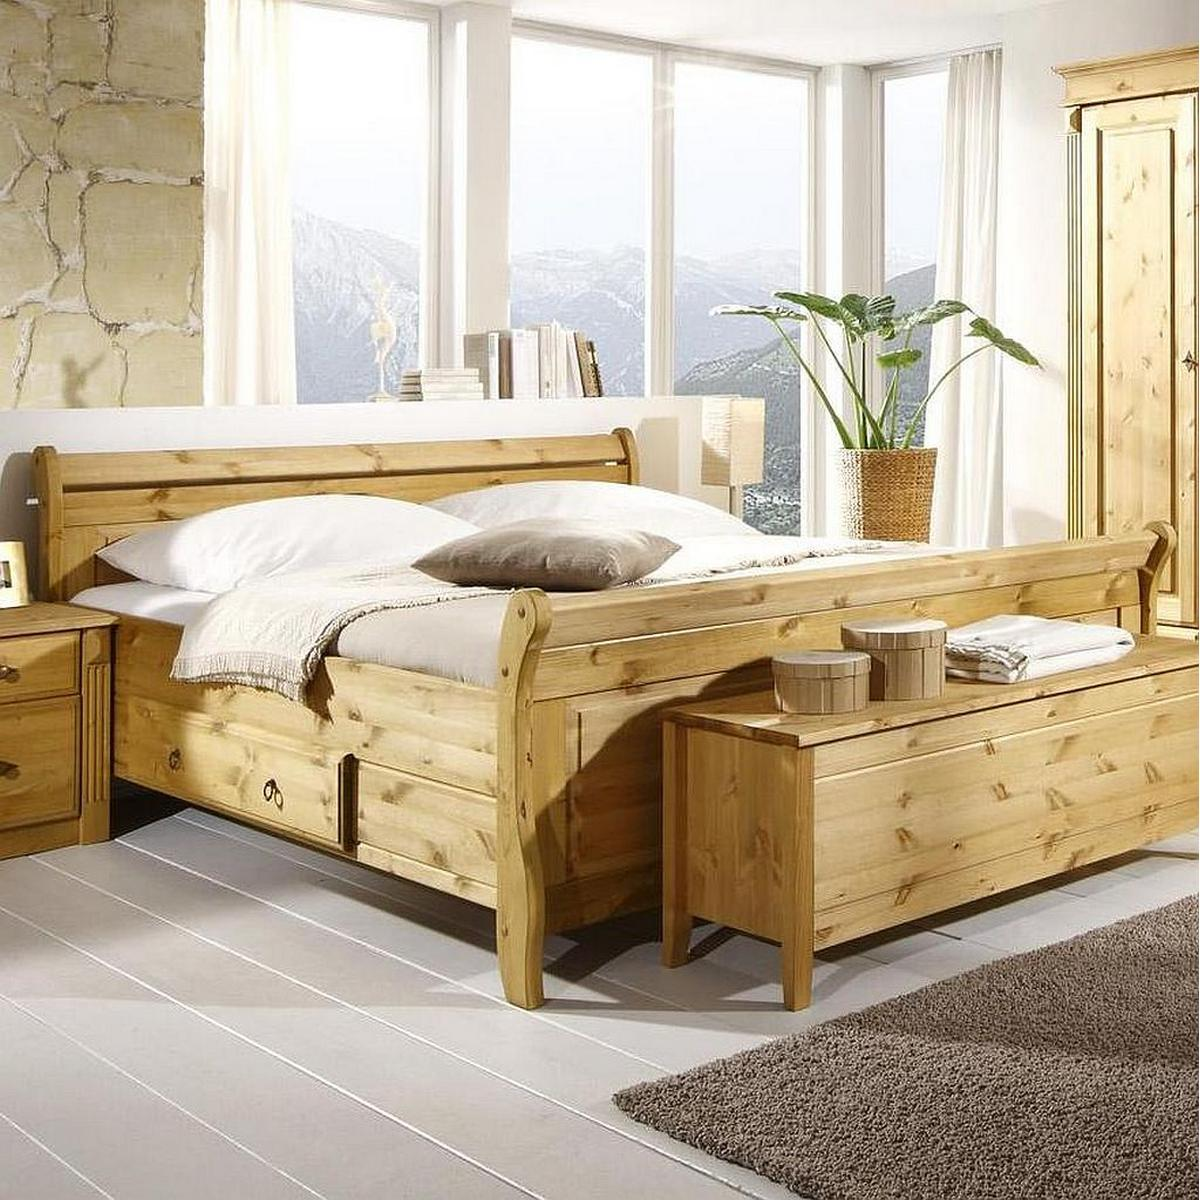 landhaus bett mit schubladen 180x200 massiv holz kiefer. Black Bedroom Furniture Sets. Home Design Ideas